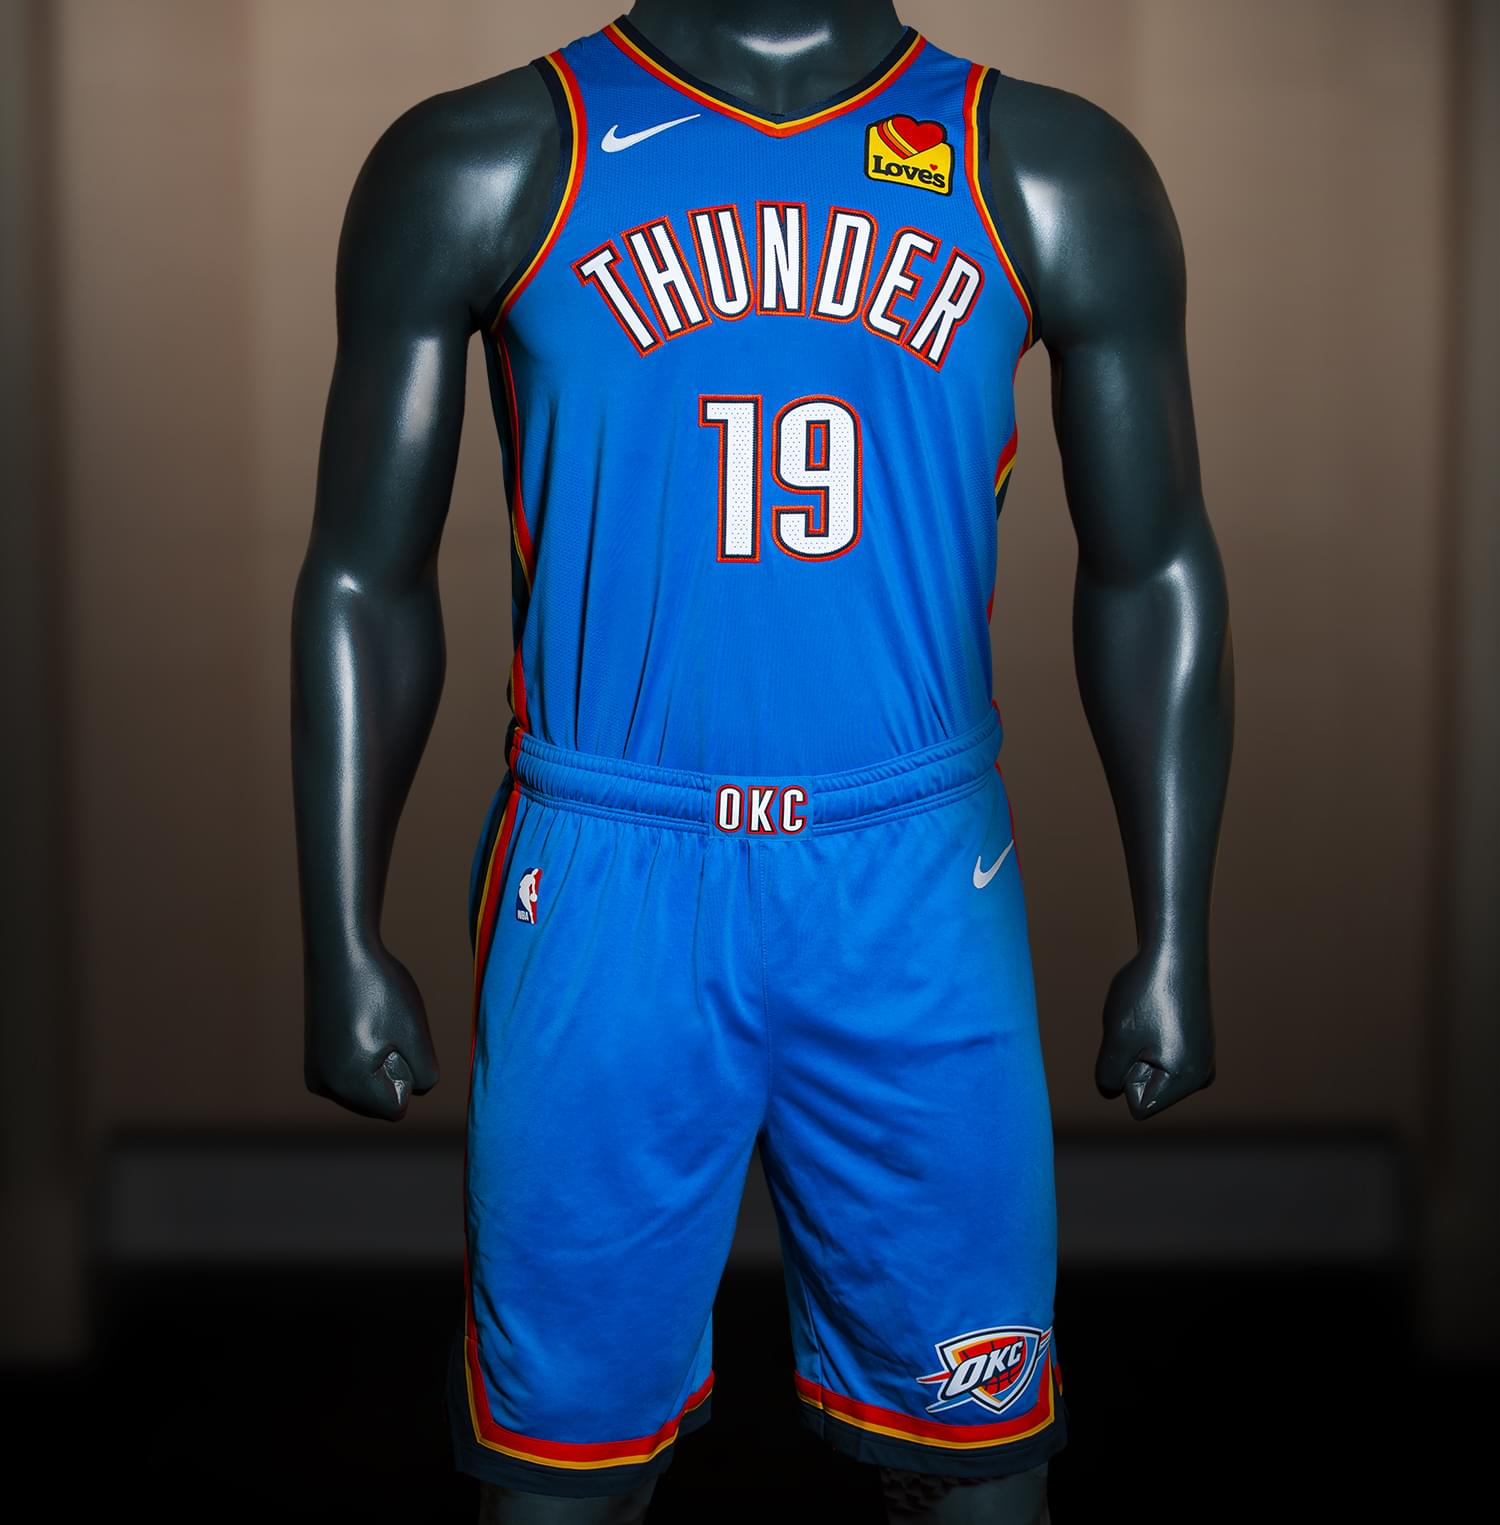 info for 9d4e2 3435f Thunder Unveils New Uniforms for 2019-2020 Season | WWLS-FM